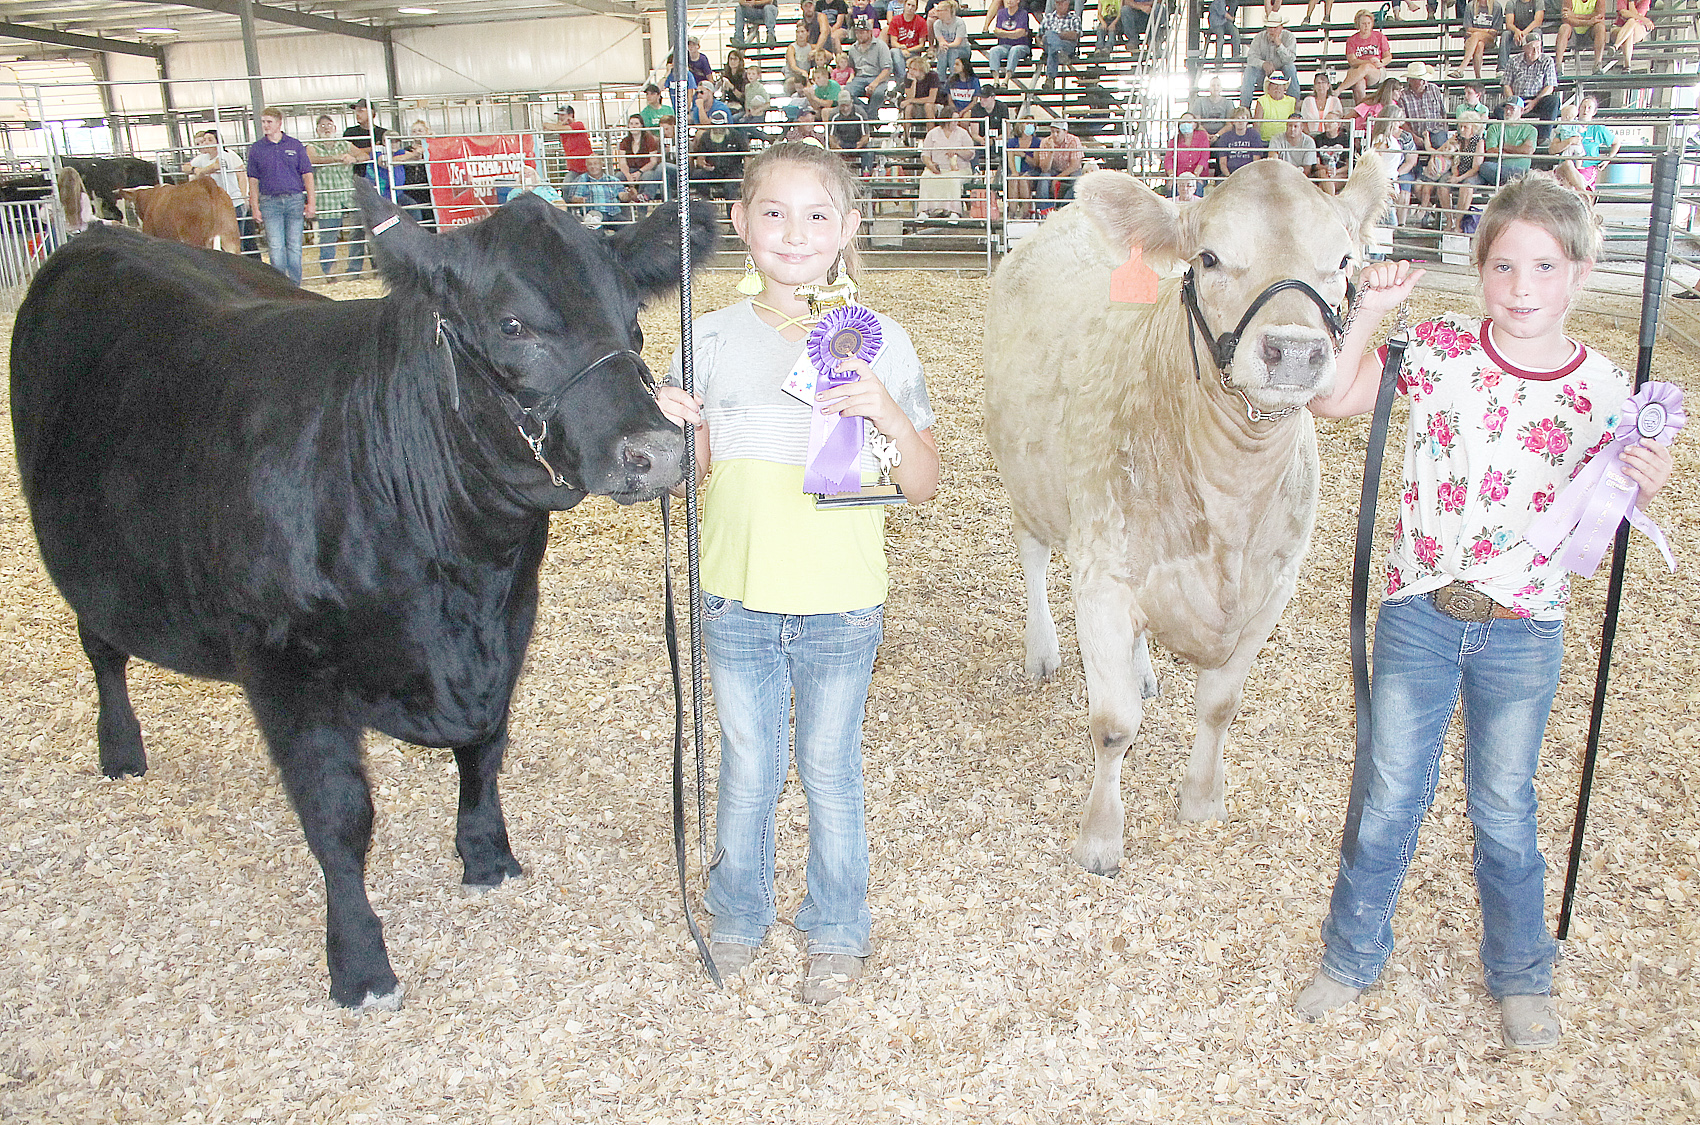 In beginner beef showmanship, Harper Mitchell (left) of the Mayetta Mustangs was named champion while Paisley Askren (right) of the North Jackson Jets was named reserve champion.